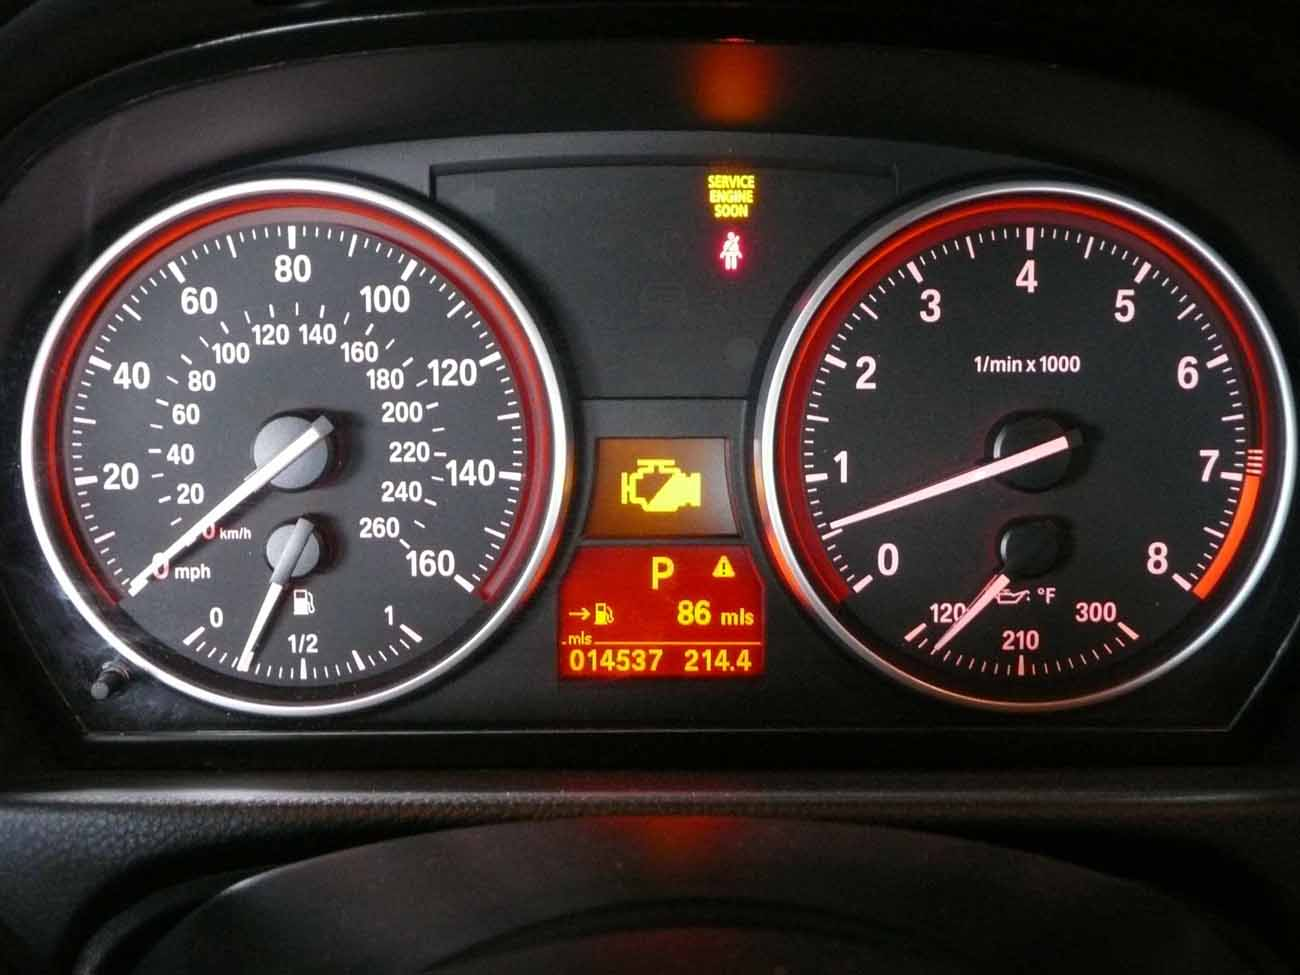 Bmw 328xi Warning Symbolsxi Warning Light Symbols Google Search Bmw